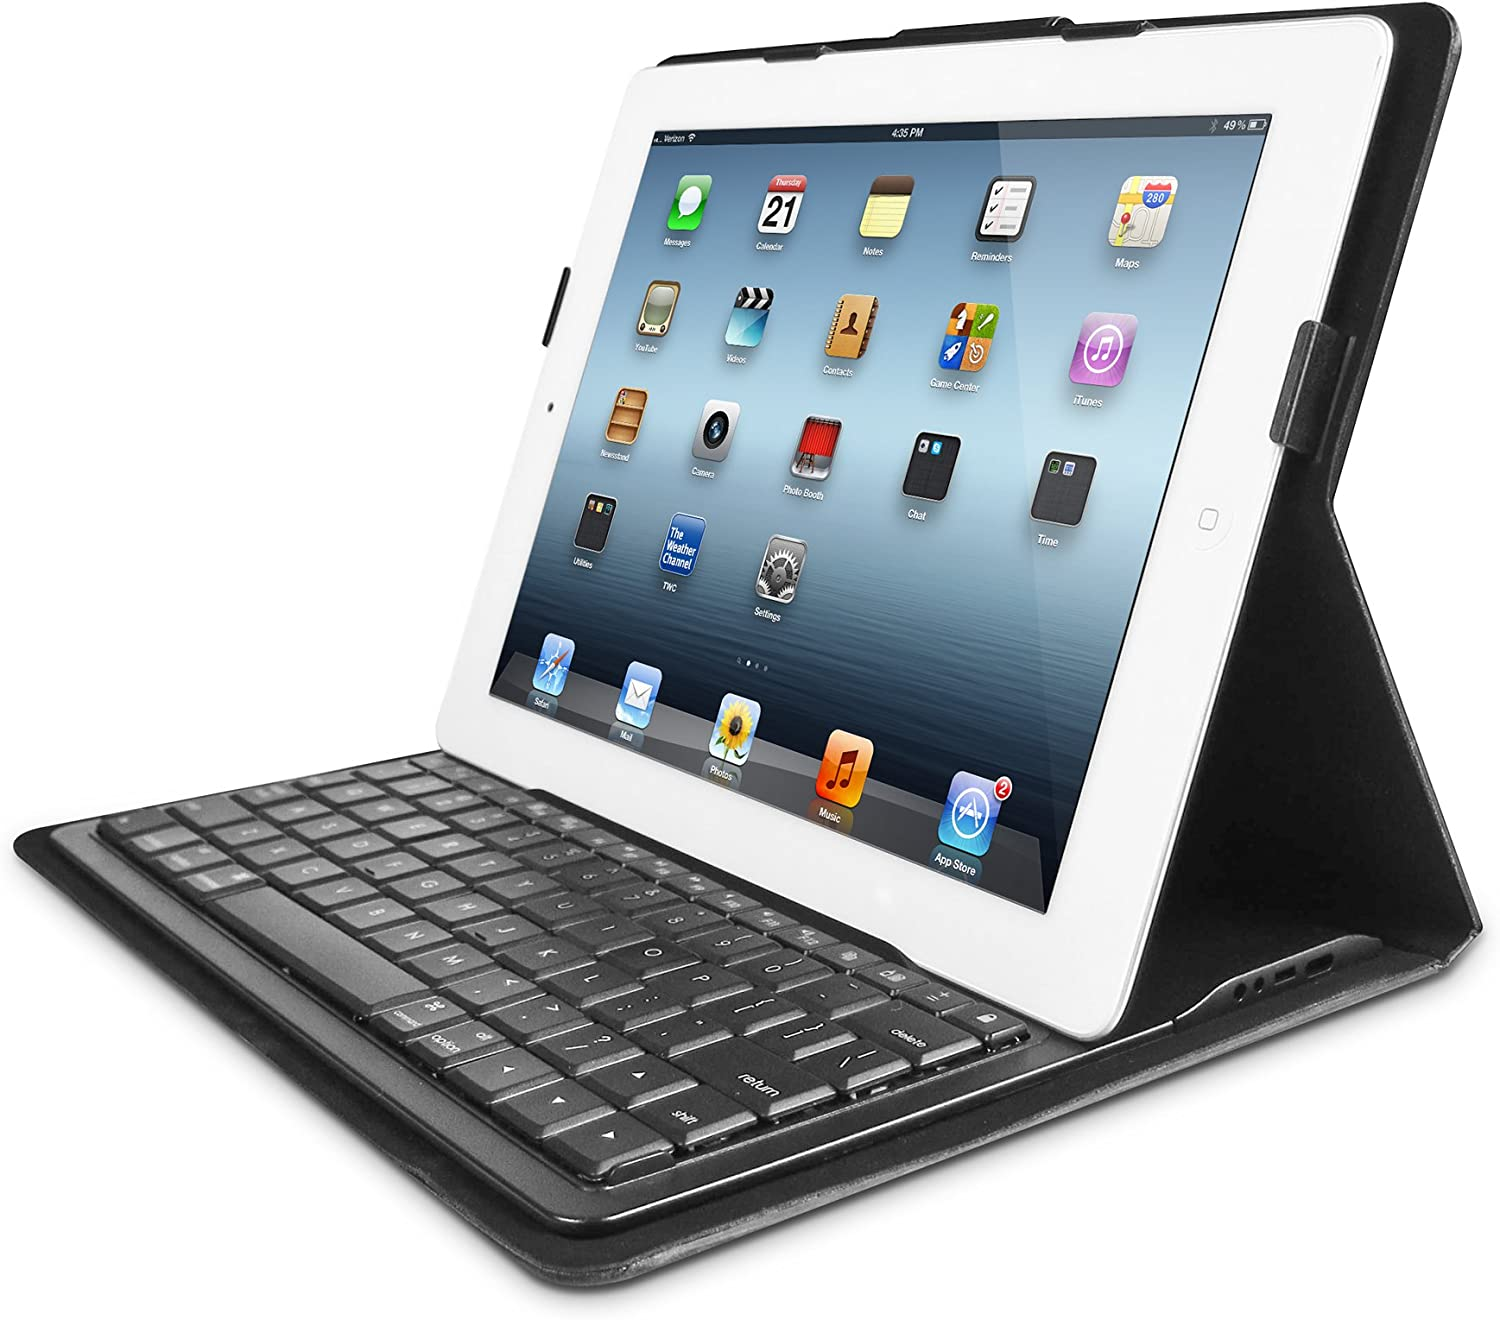 Amazon Com Iluv Executive Folio Cover With Bluetooth Keyboard For Ipad 4 Ick838blk Computers Accessories